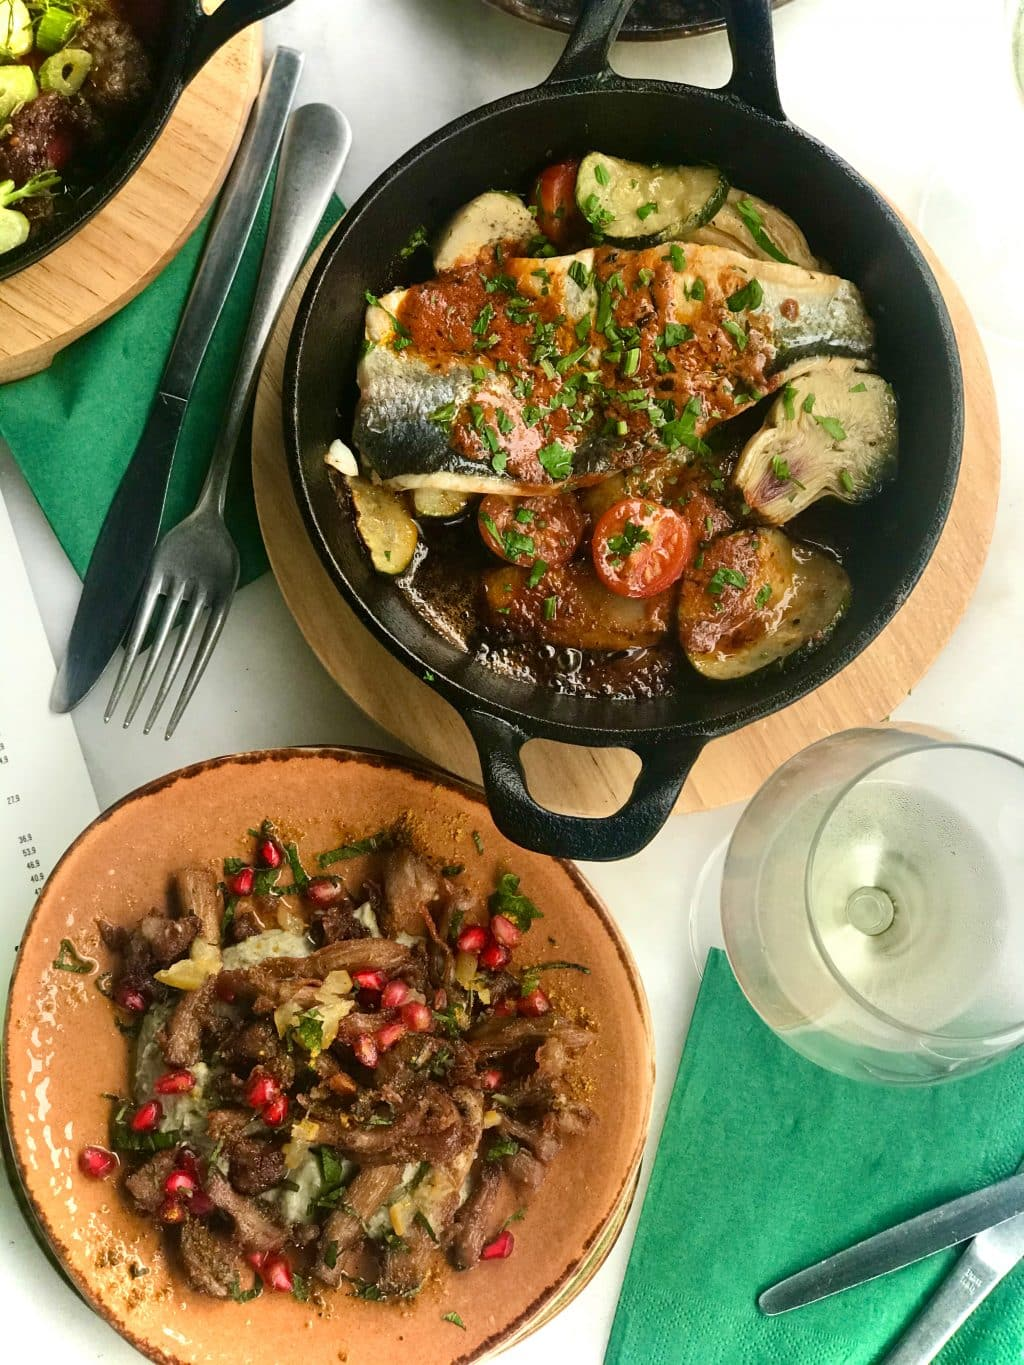 Creative, flavorful and not your everyday kind of tapas in Antwerp. Tapas and wine bar Tio serves Catalan food with a Moorish twist.